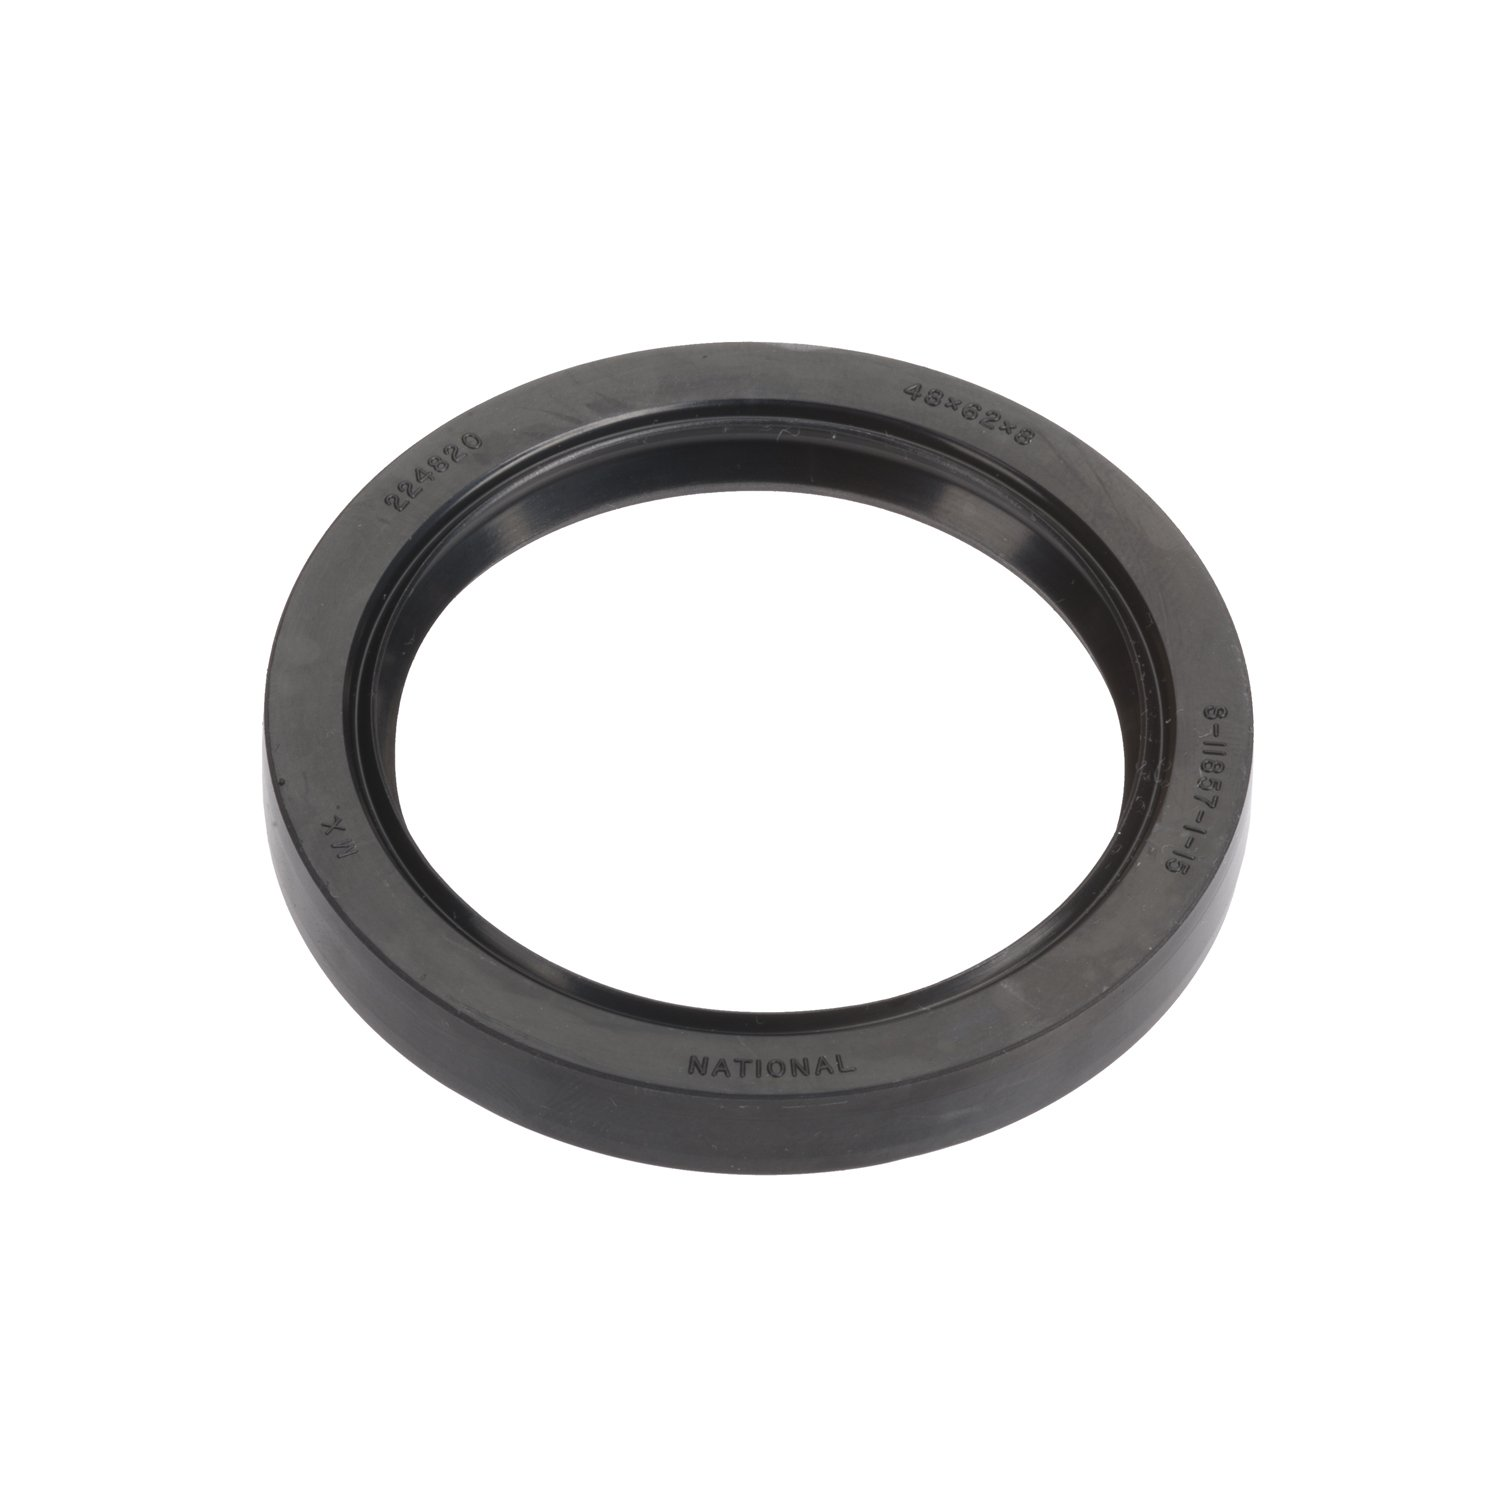 National 224820 Oil Seal 224820-NAT